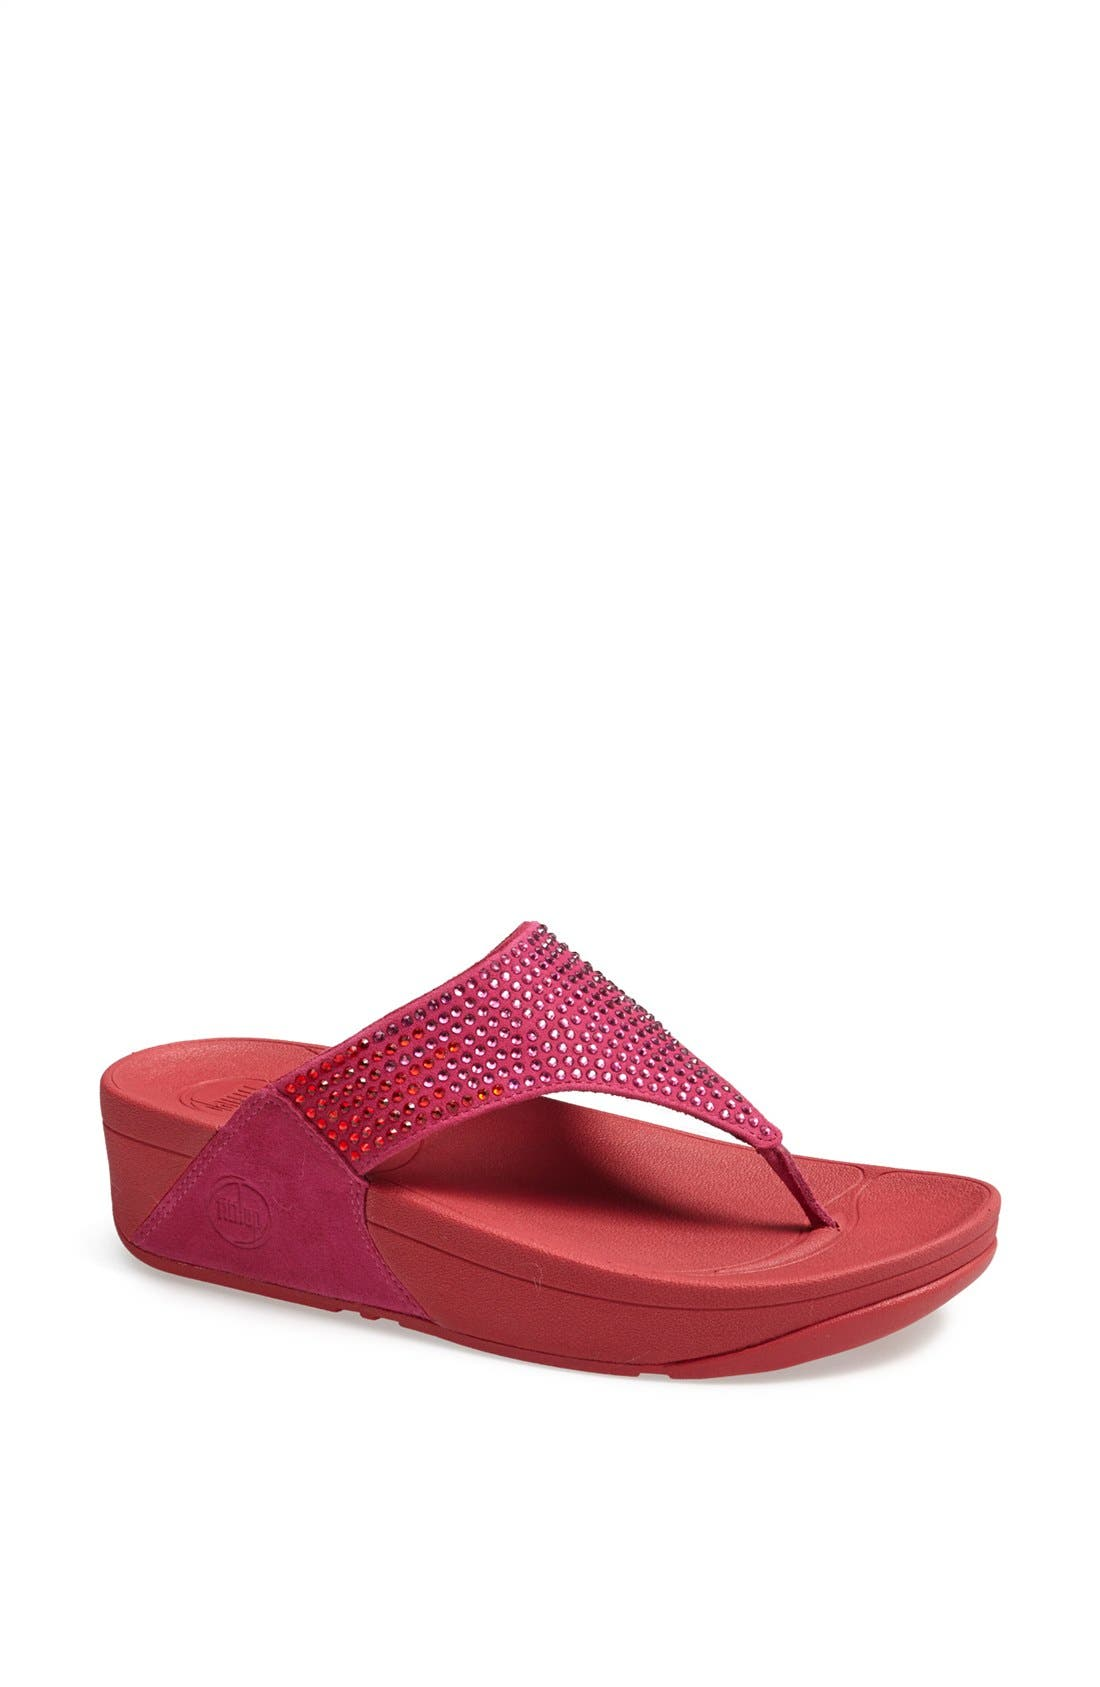 Main Image - FitFlop 'Flare™' Sandal